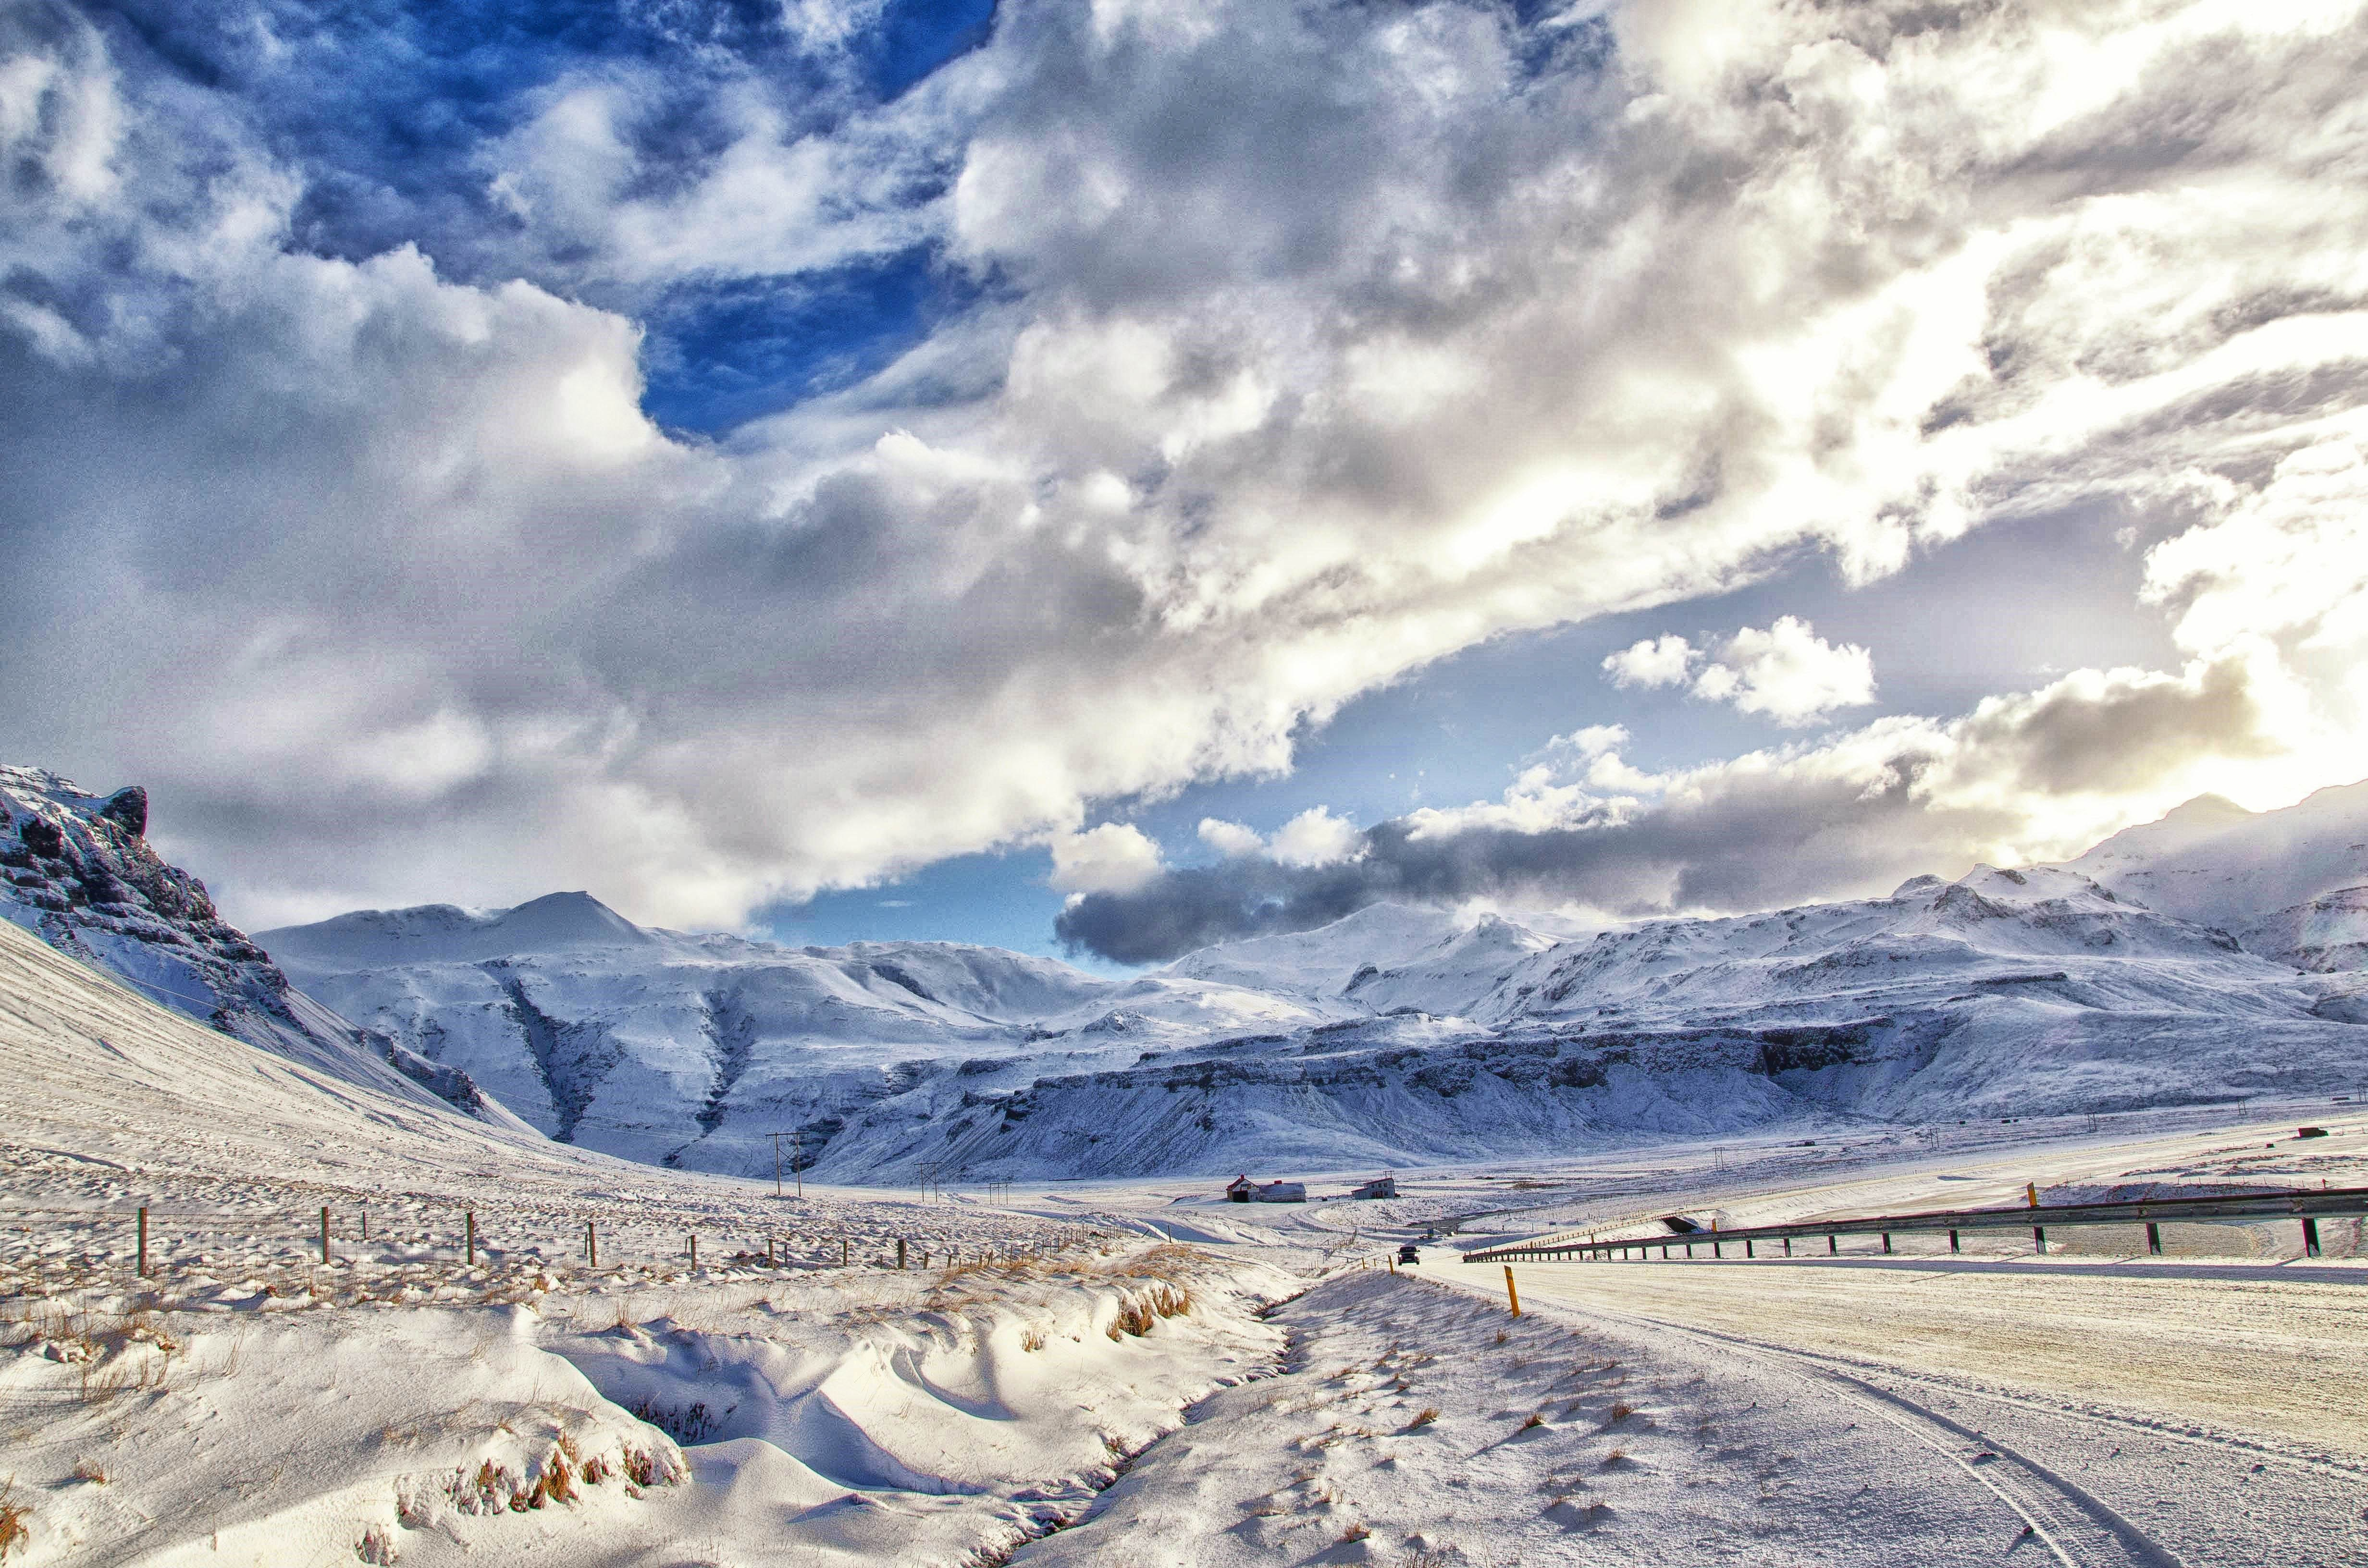 landscape photography of snowy mountain under cloudy sky